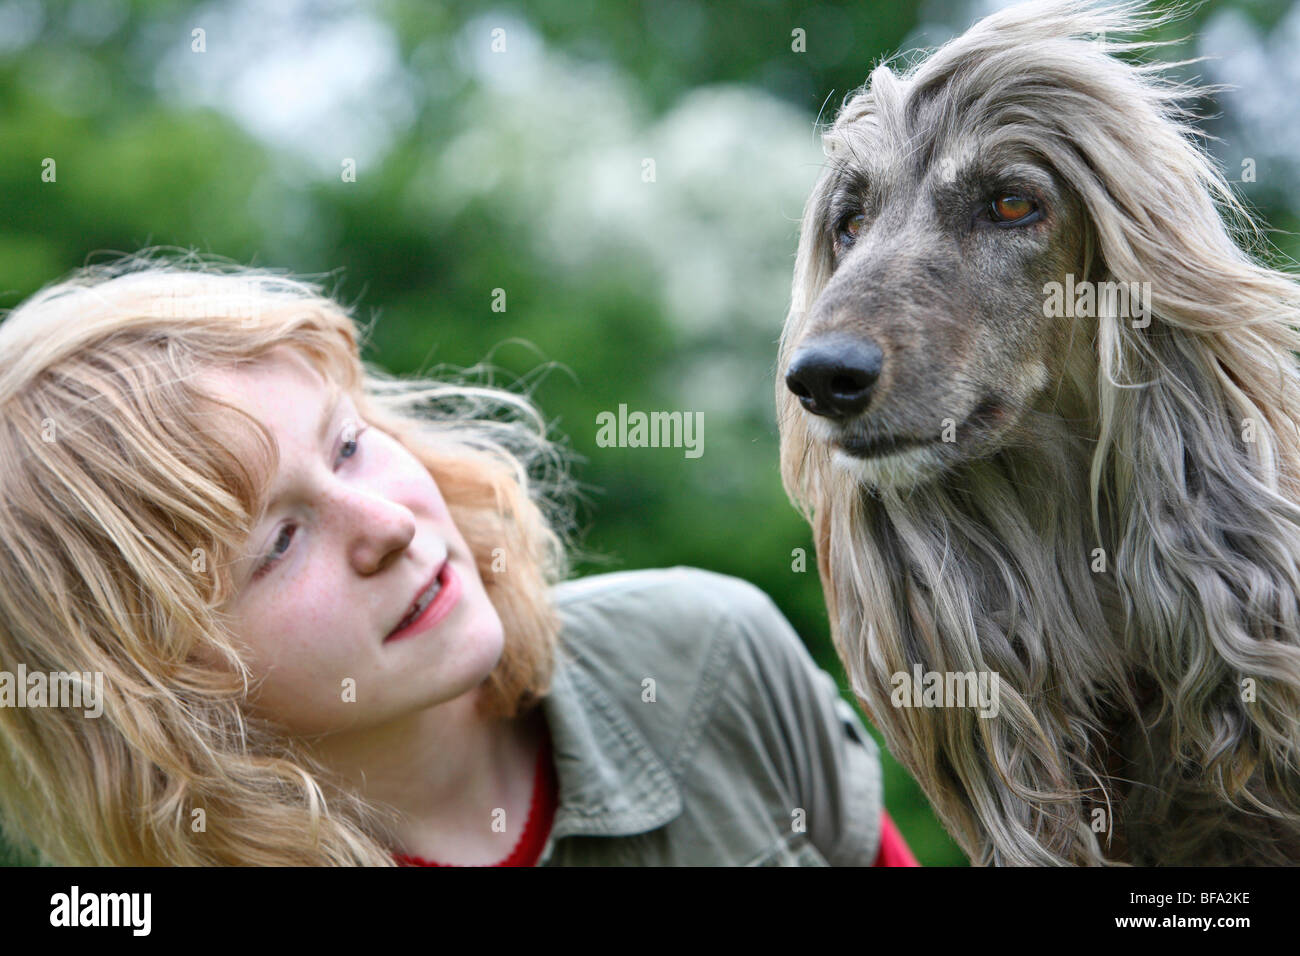 Afghanistan Hound, Afghan Hound (Canis lupus f. familiaris), girl with his dog, their long hair blowing in the wind Stock Photo